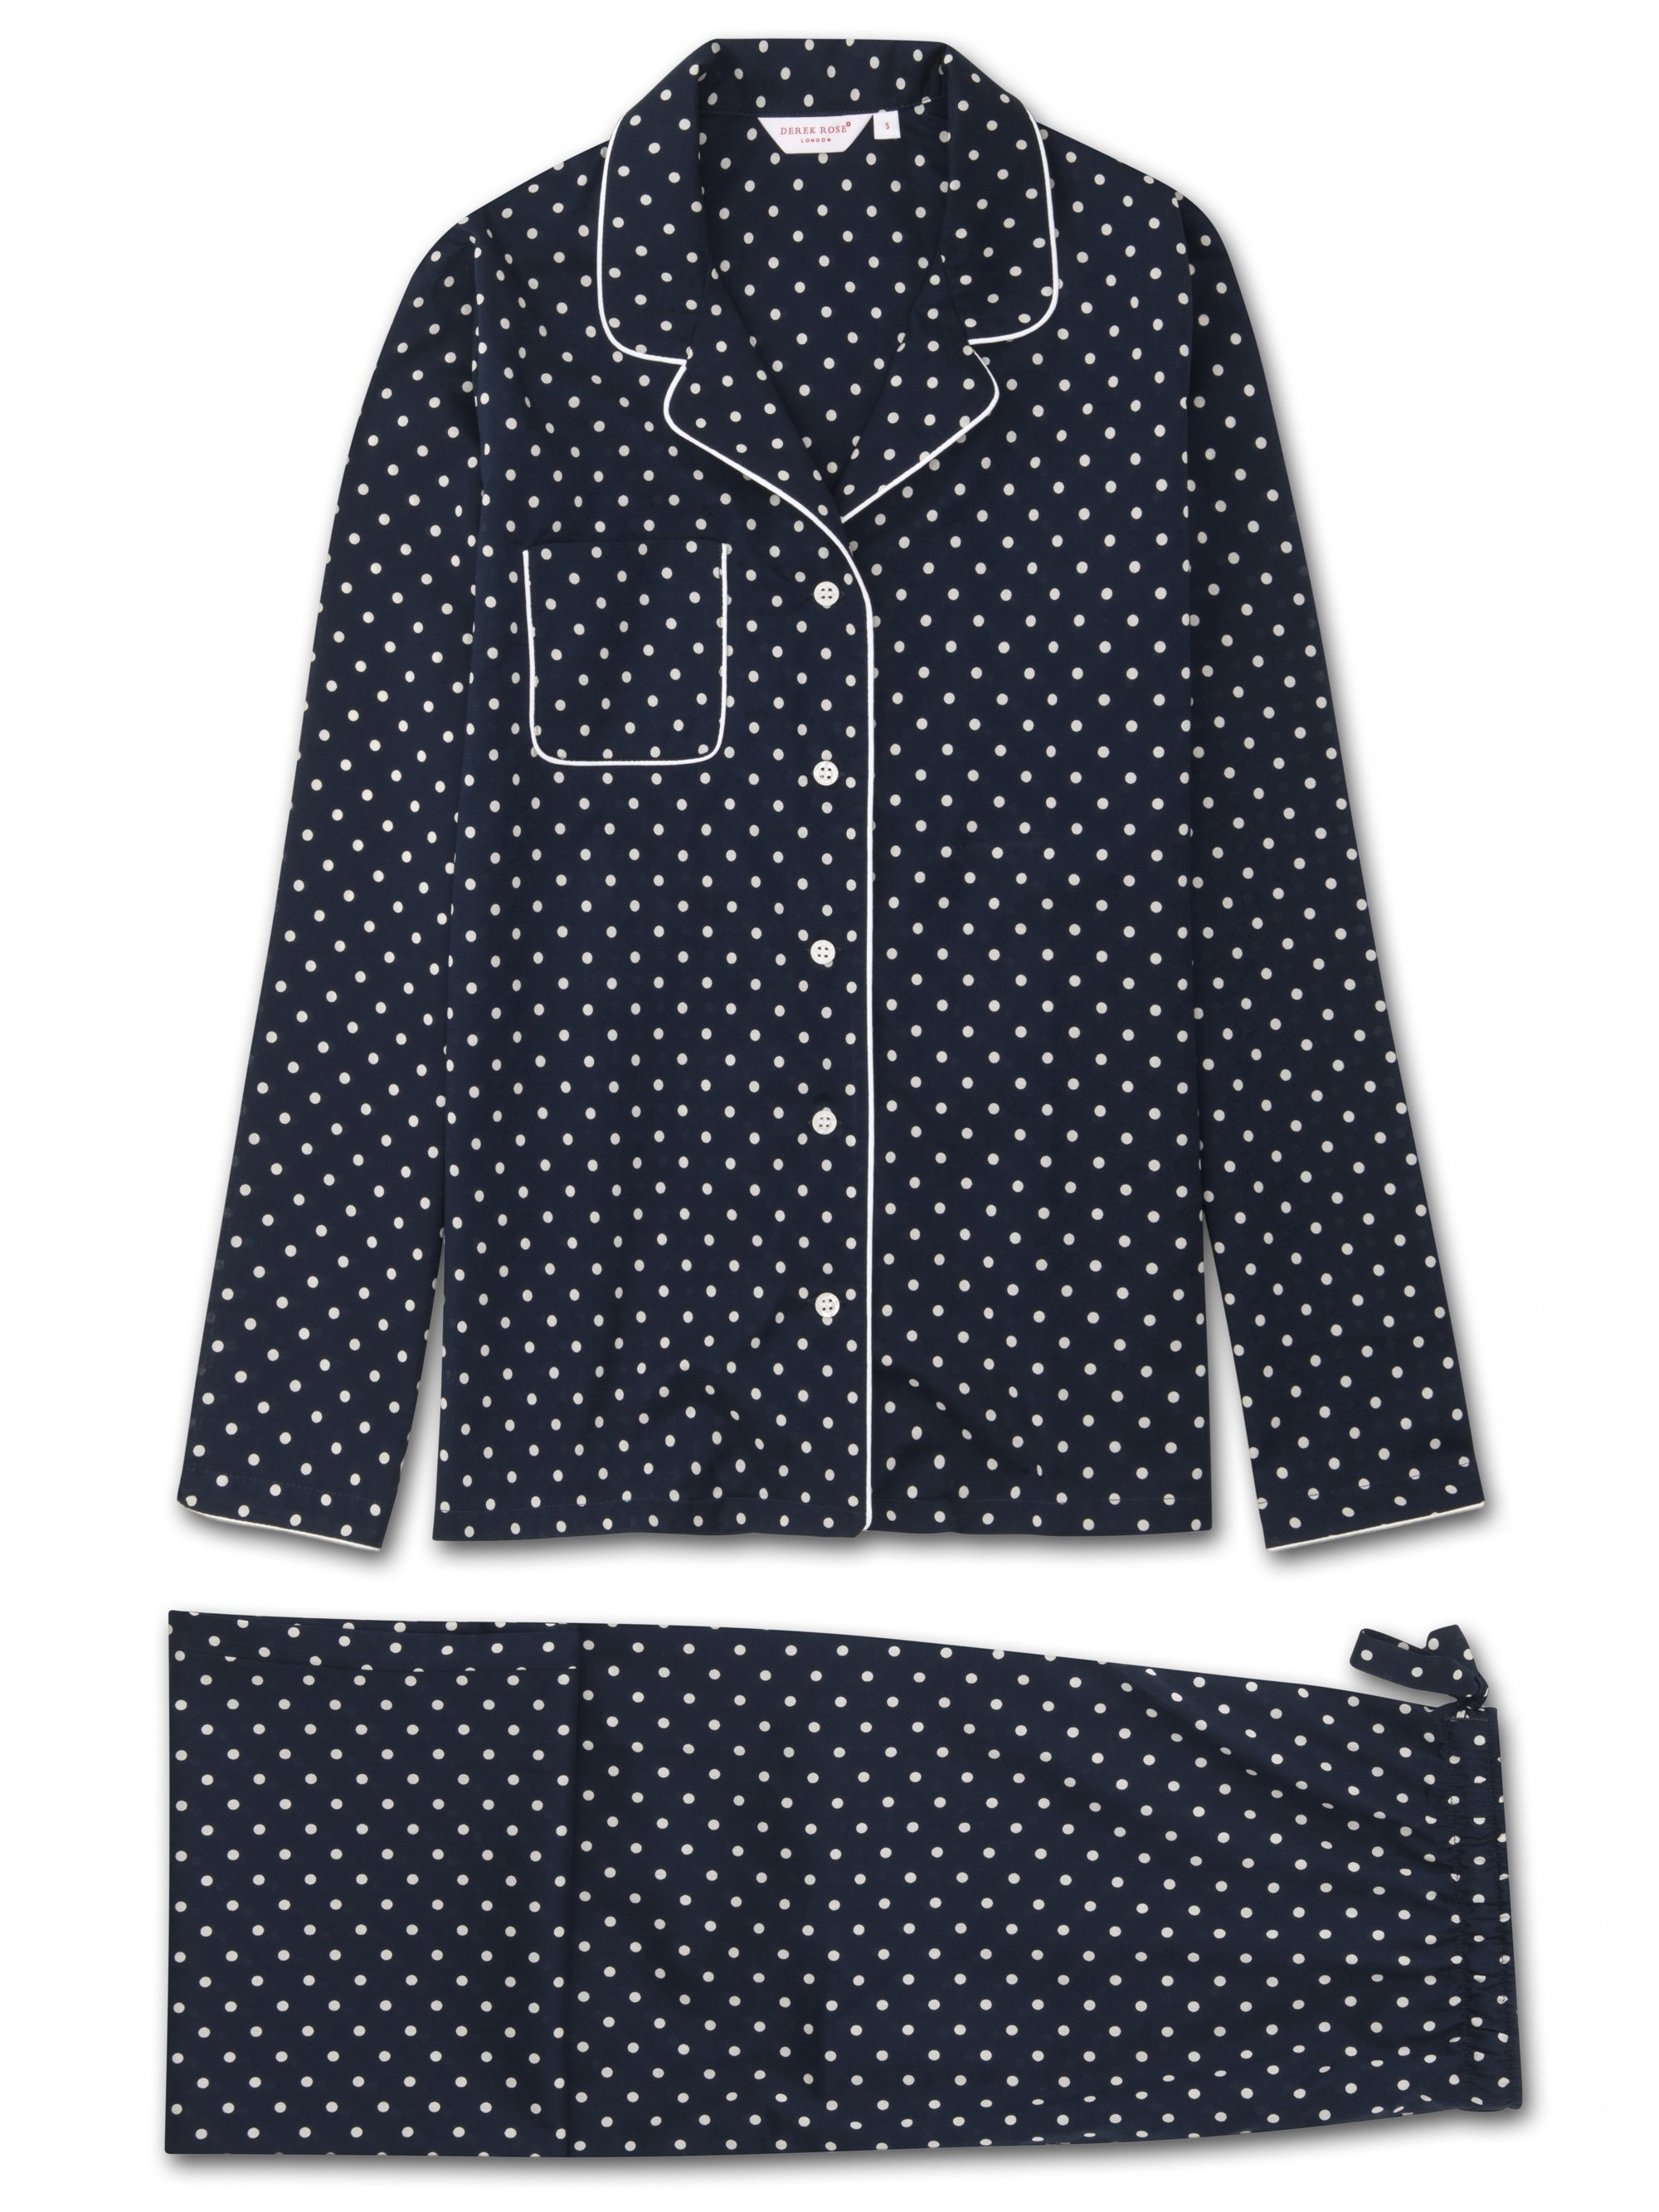 Women's Pyjamas Plaza 60 Cotton Batiste Navy